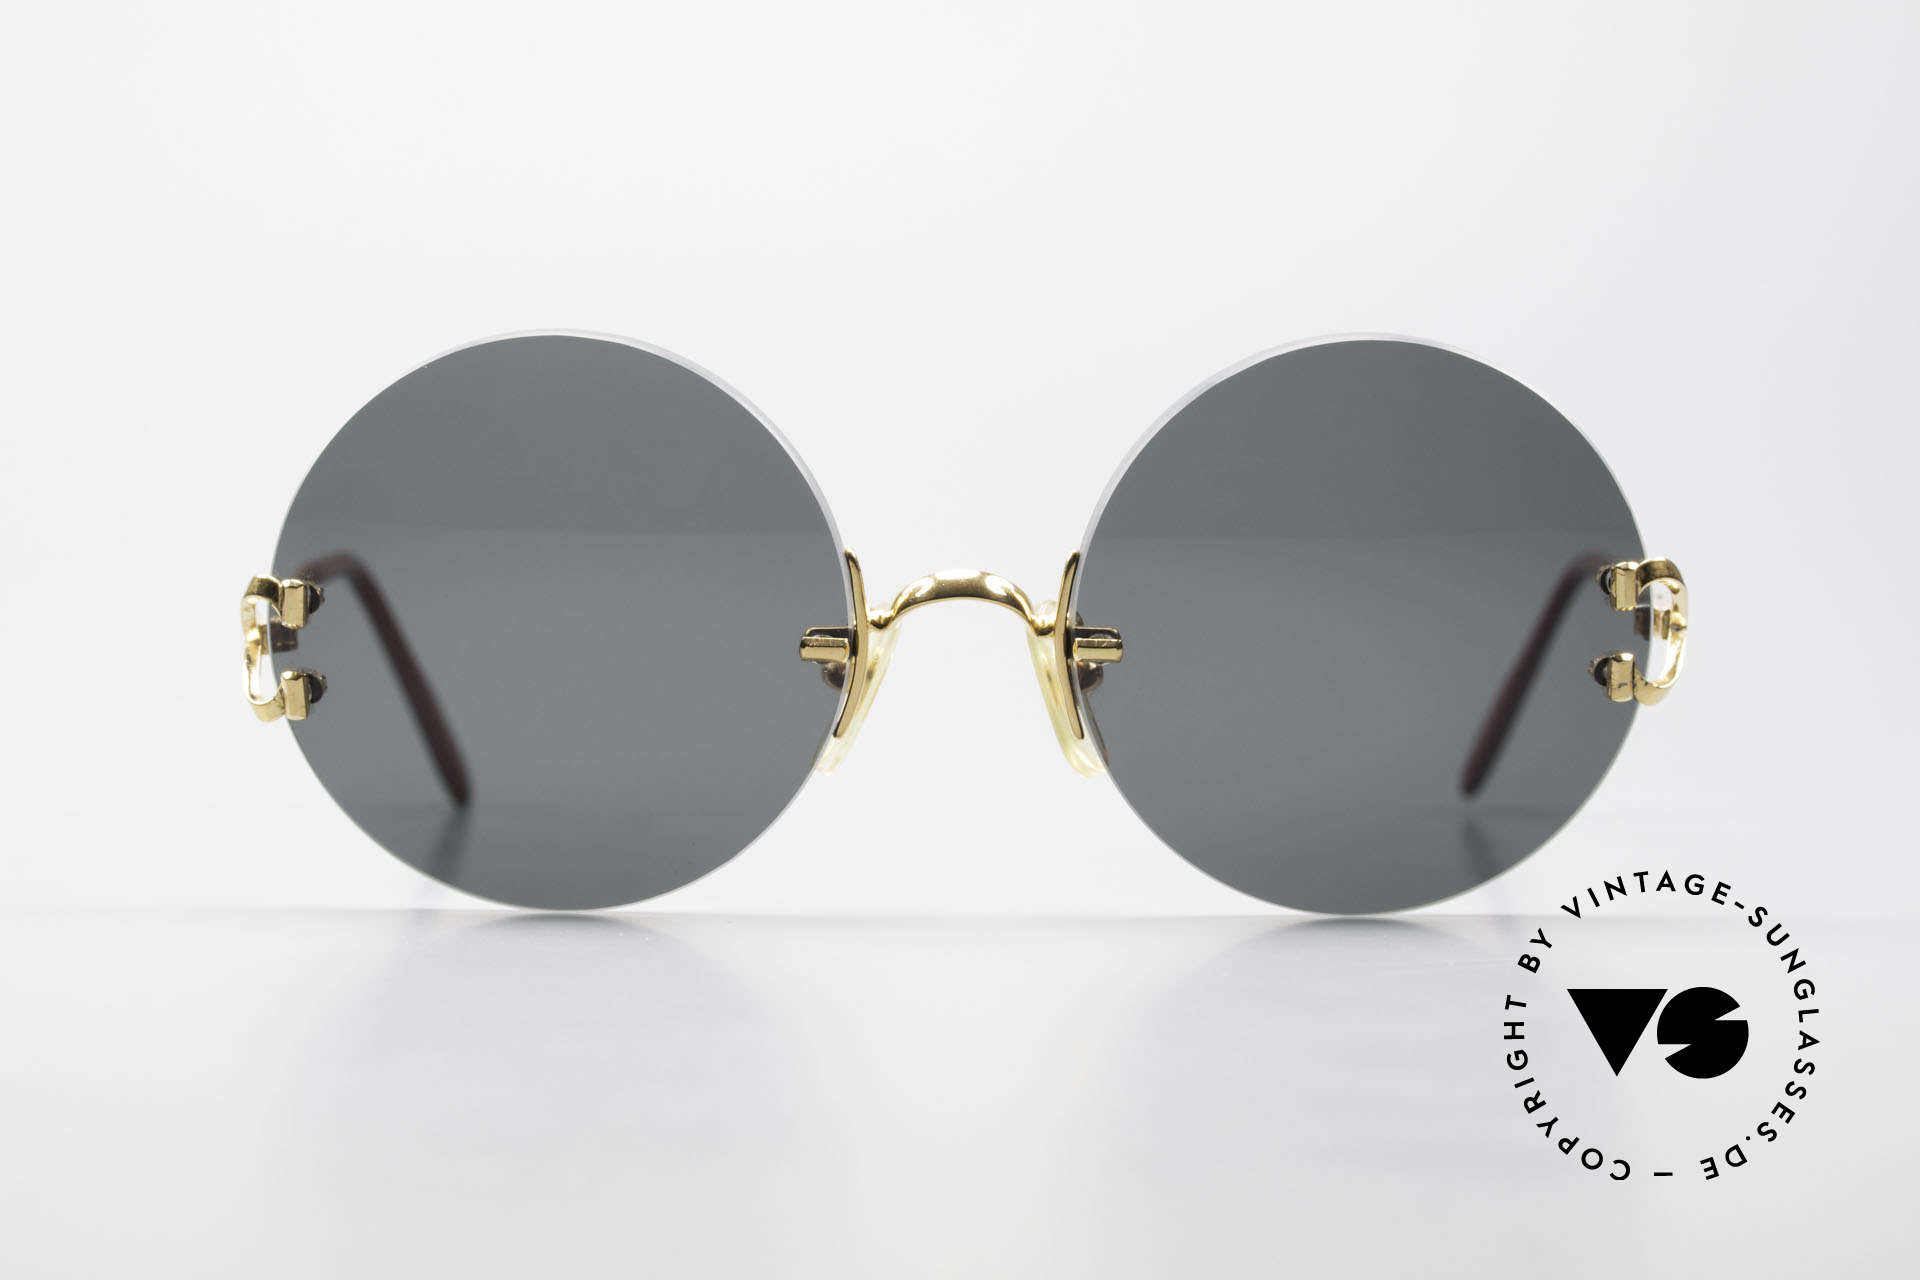 Cartier Madison Small Round Luxury Sunglasses, precious round designer shades; 22ct GOLD-PLATED, Made for Men and Women